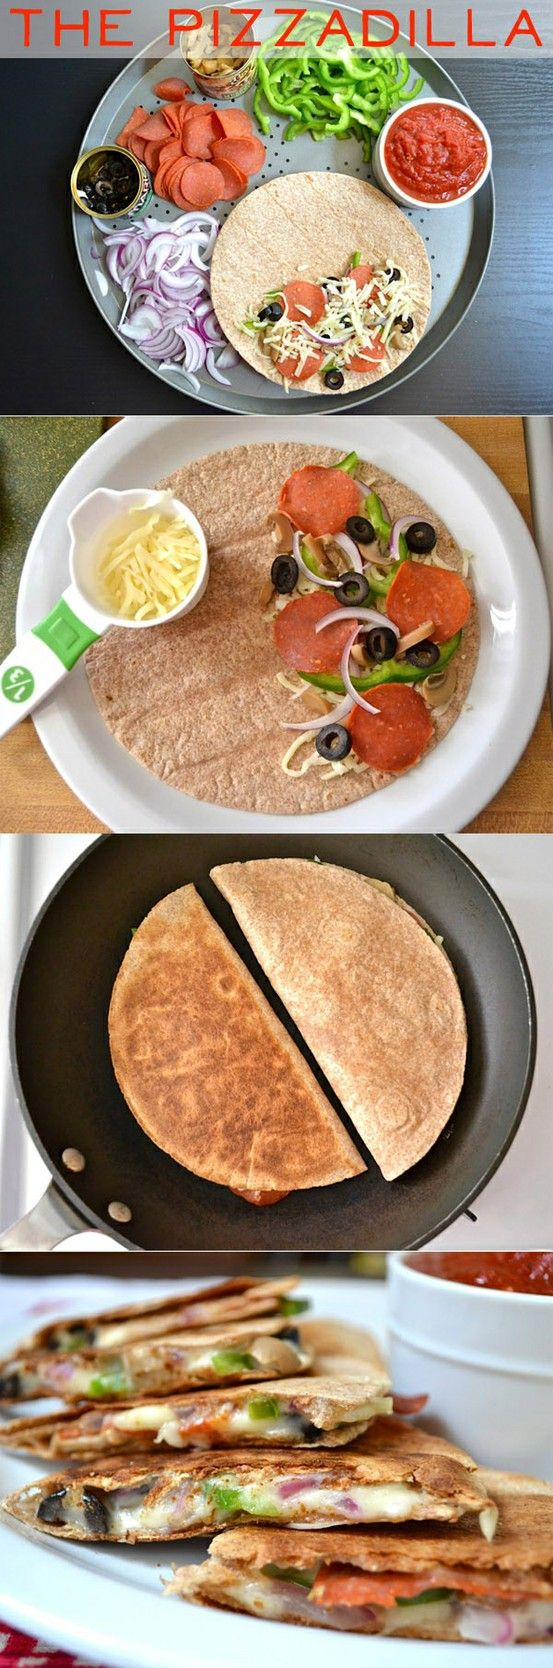 Pizzadillas - healthy pizza quesadillas packed with veggies!